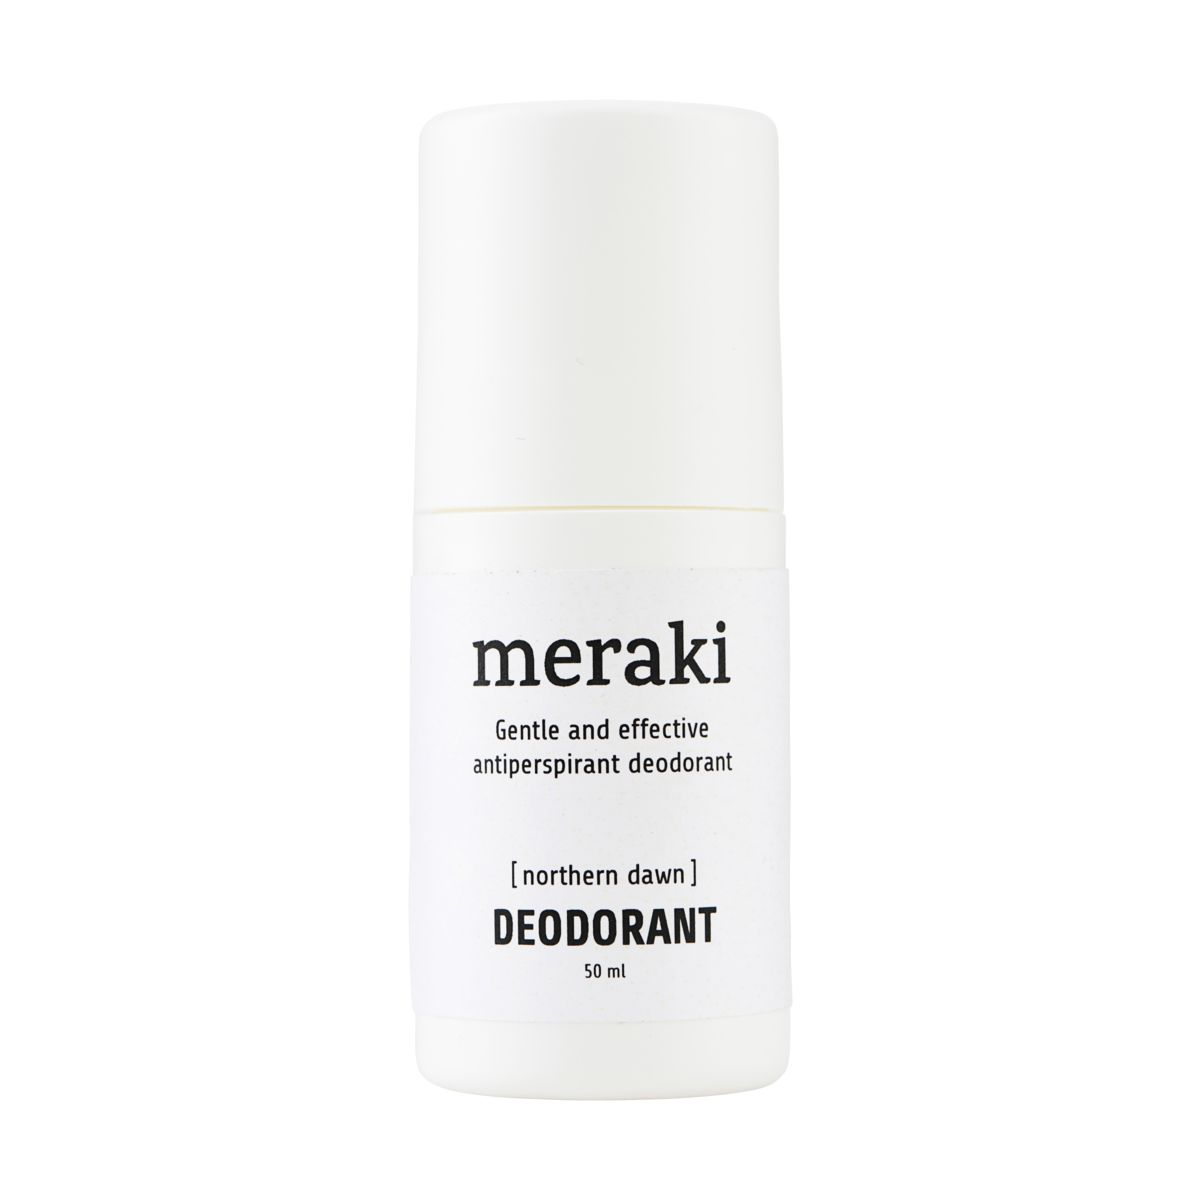 Meraki - Deodorant - Northern dawn